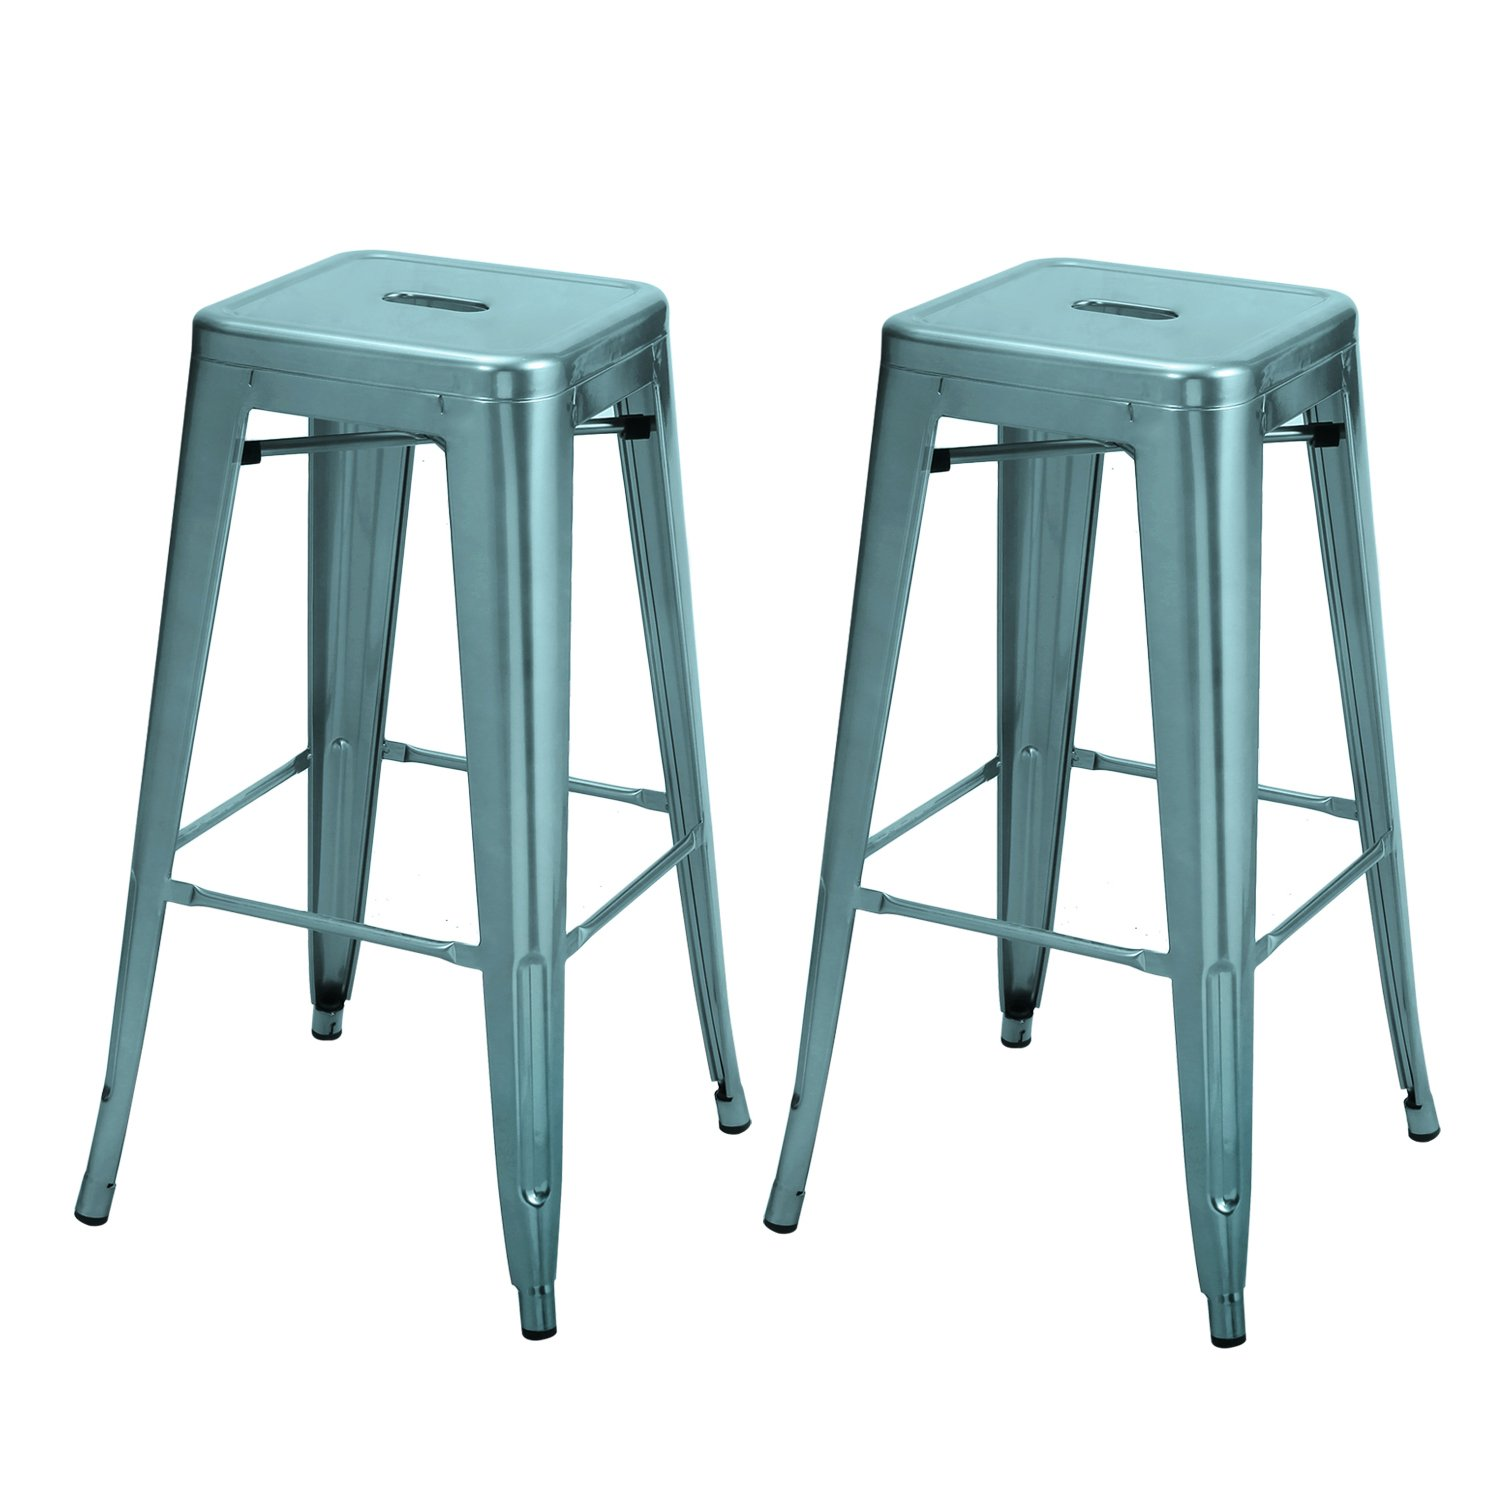 2016 New Adeco 30-inch Metal Bar Stools Barstool Tolix Style Industrial Chic Chair Backless, Glossy Blue, Set of 2 CH0039-8